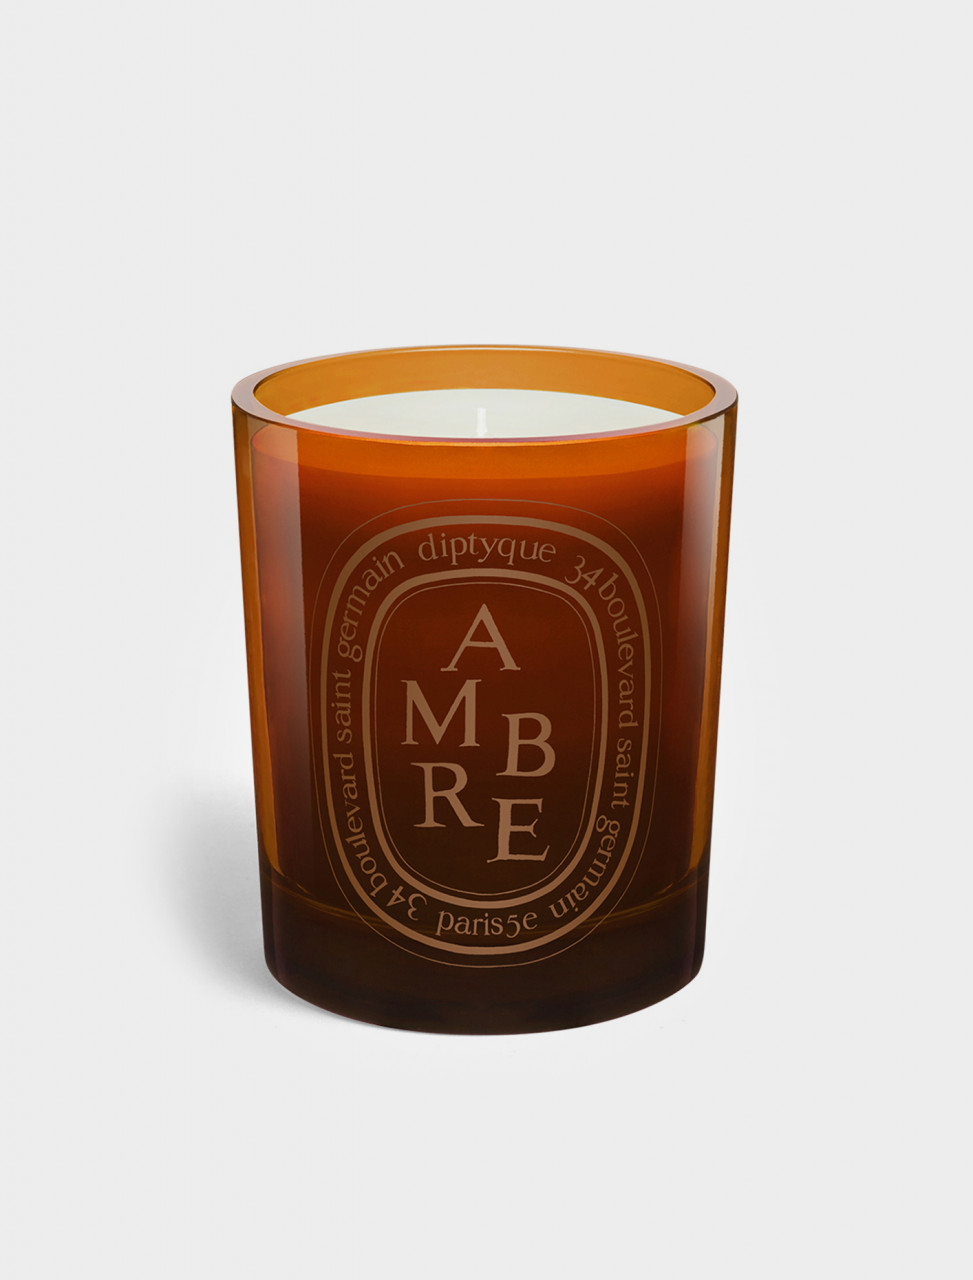 337-ABA2 DIPTYQUE AMBRE AMBER CANDLE